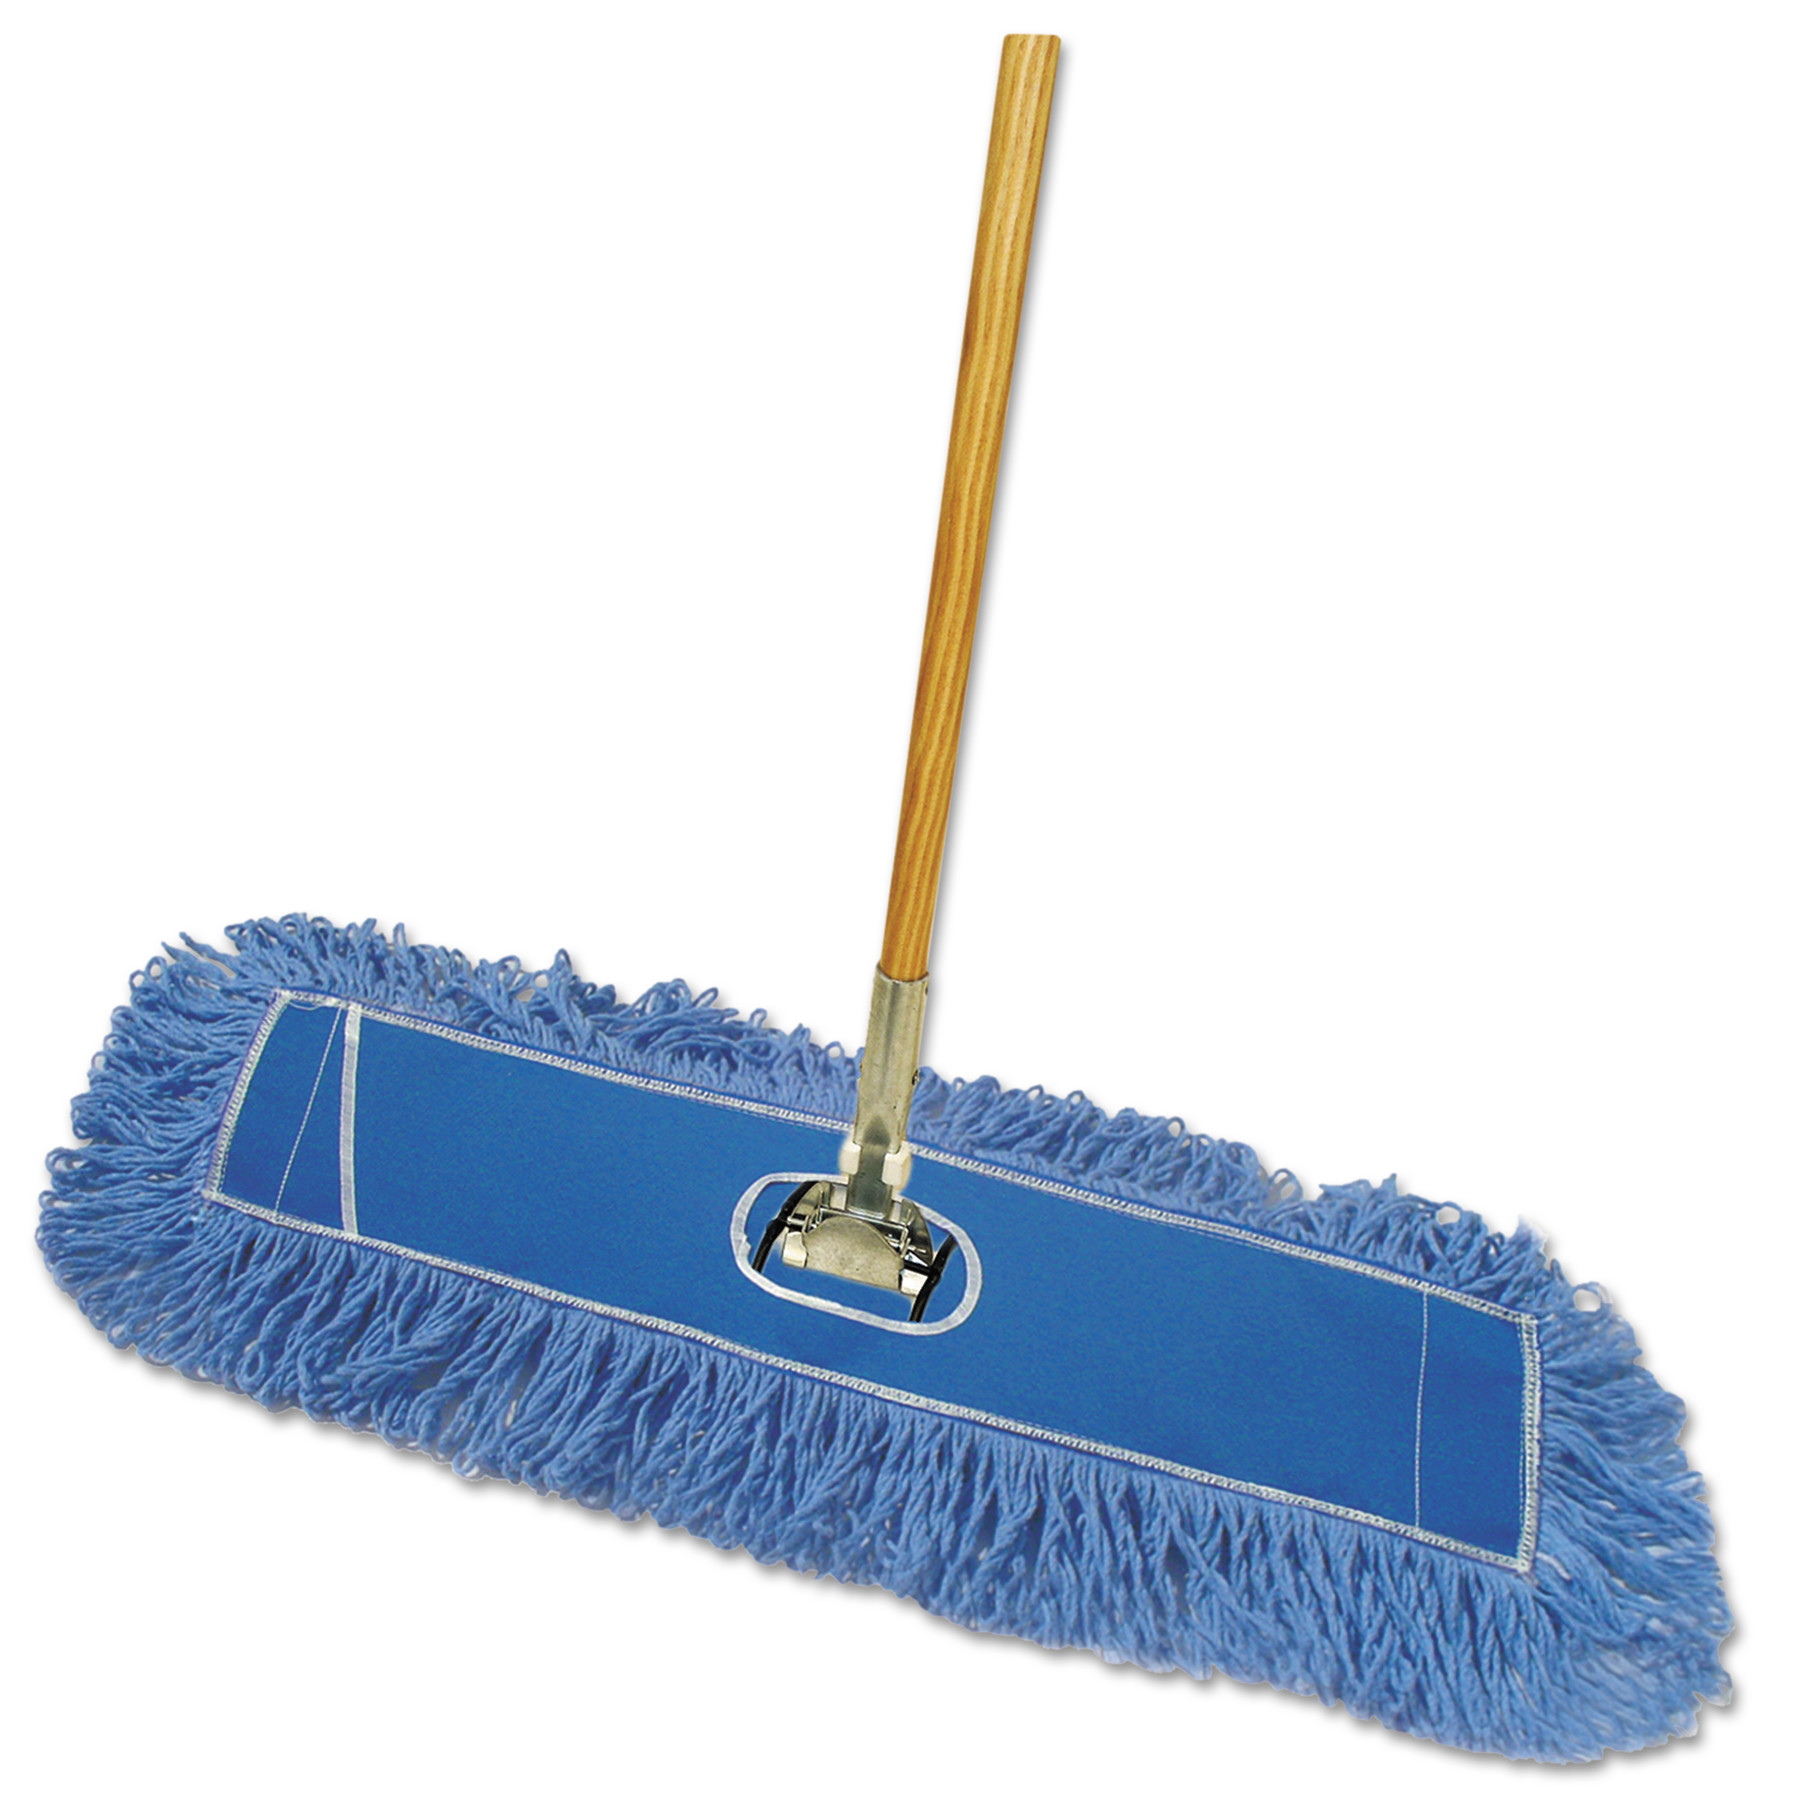 "Looped-End Dust Mop Kit, 36 x 5, 60"" Metal/Wood Handle, Blue/Natural"